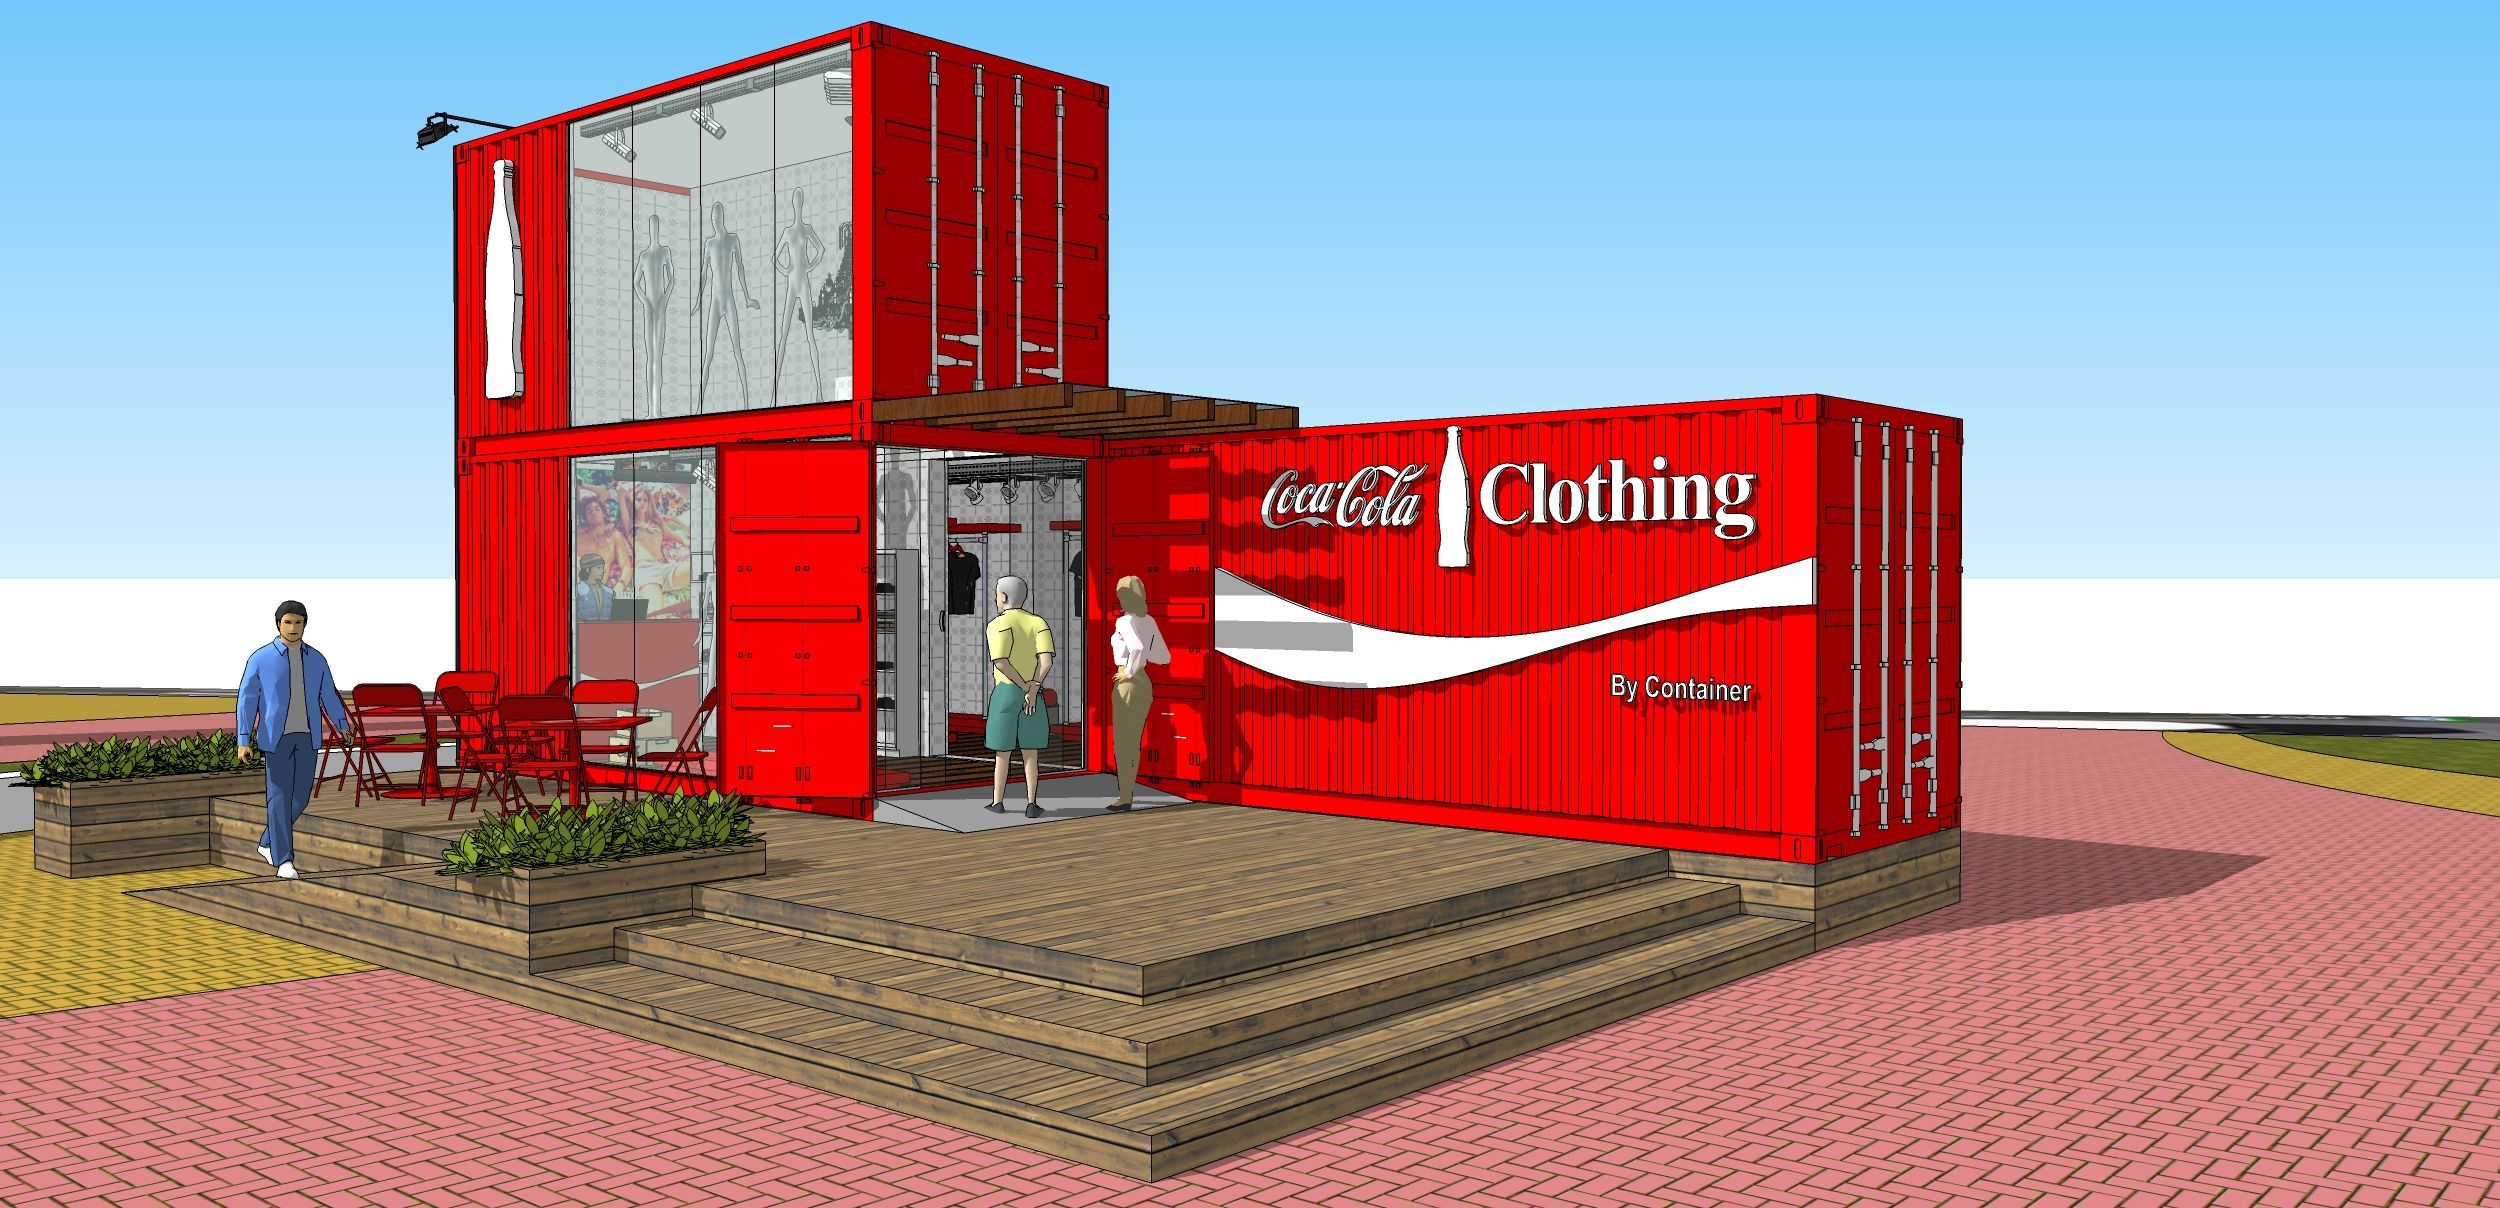 Shipping Container Projects coca-cola clothing vonpar   others: sketches and projects in